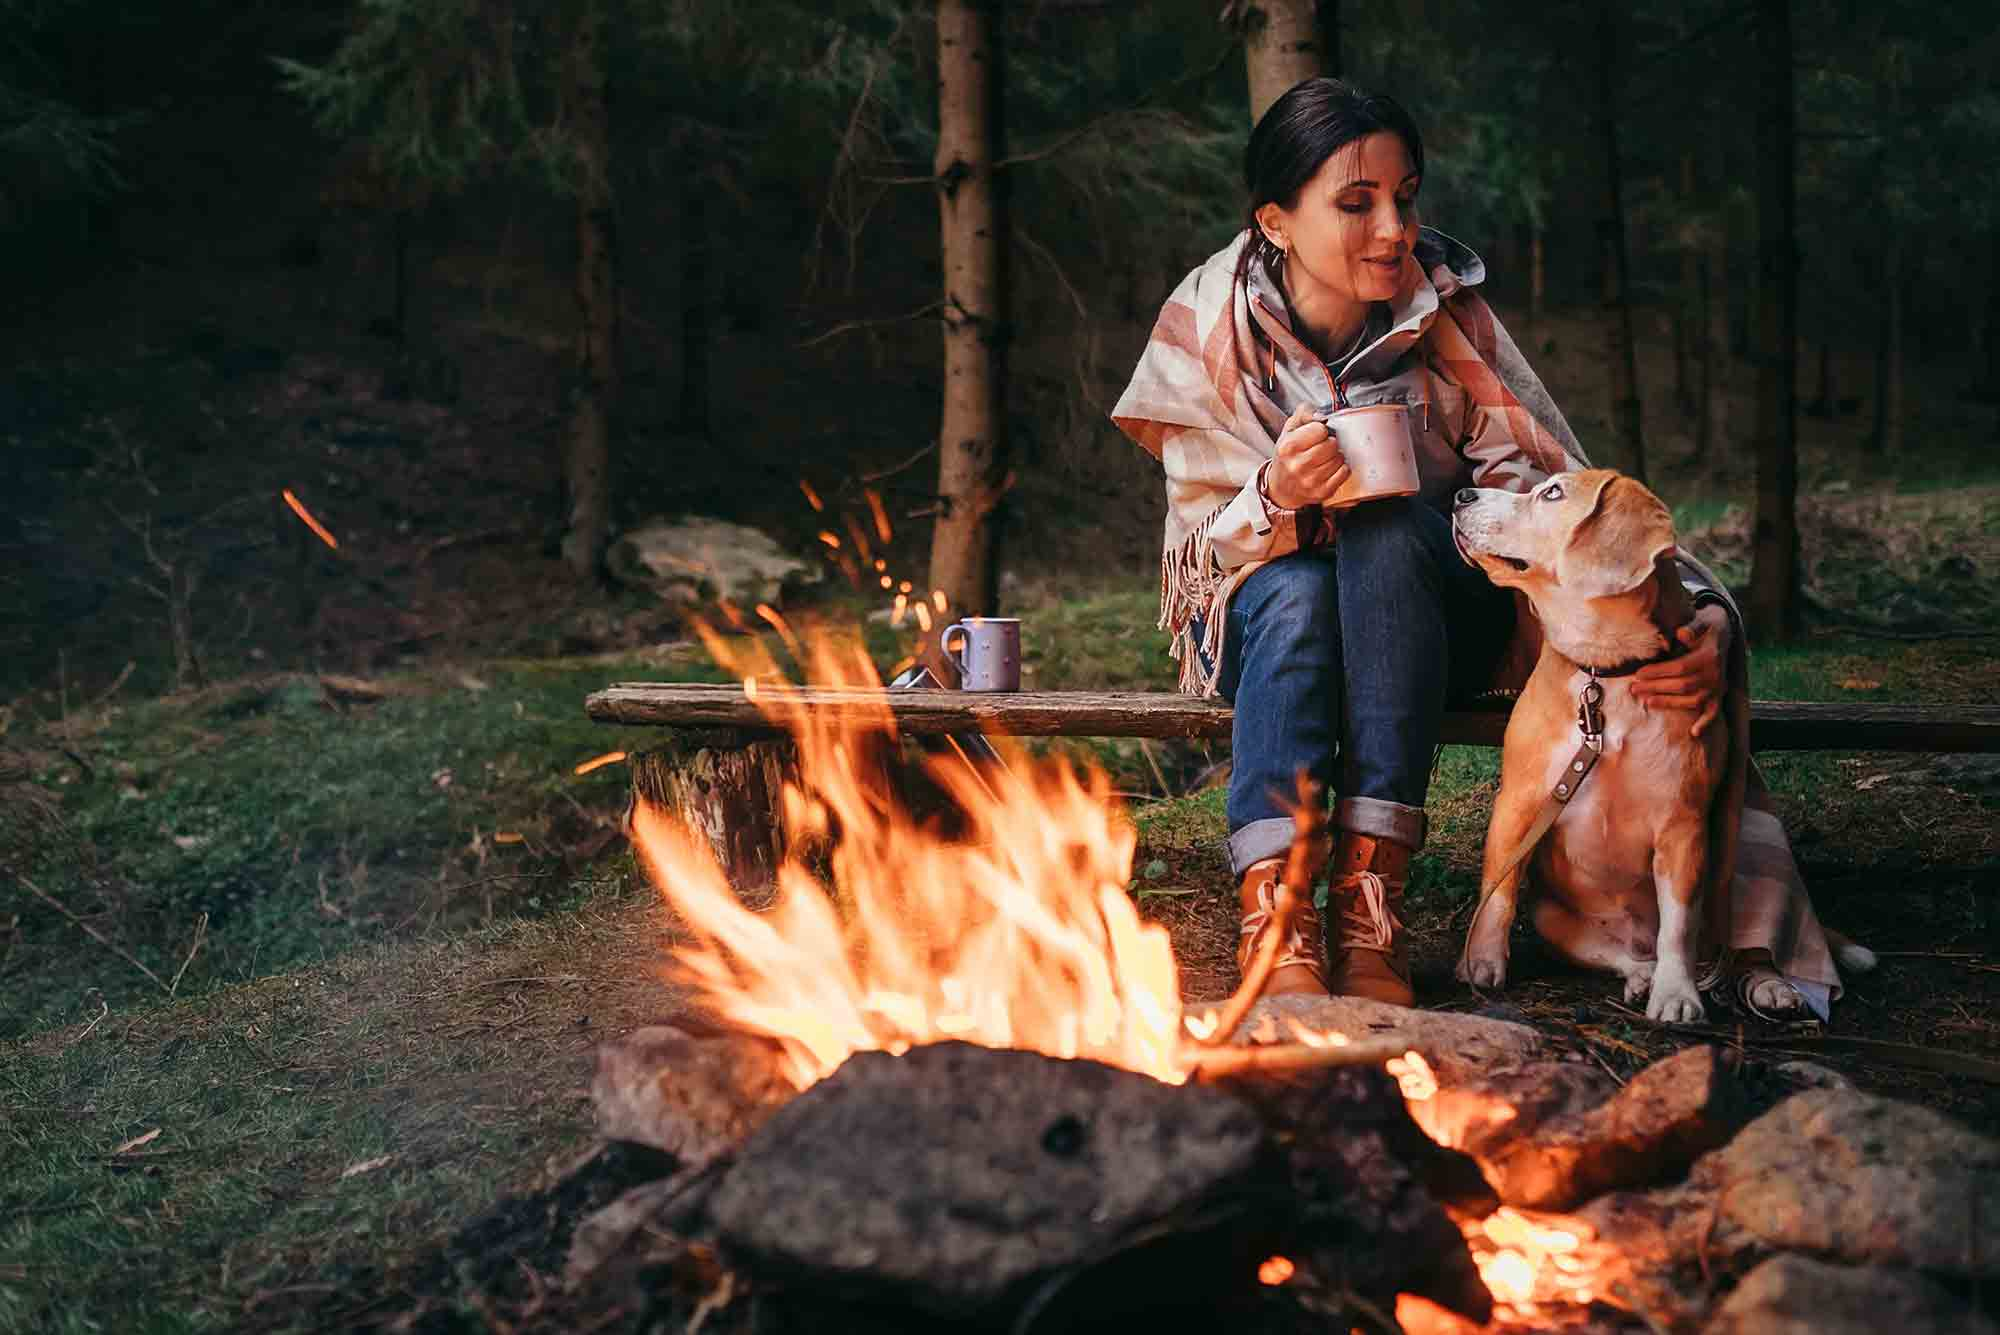 Camping outdoors with your dog is a great way to bond with pets